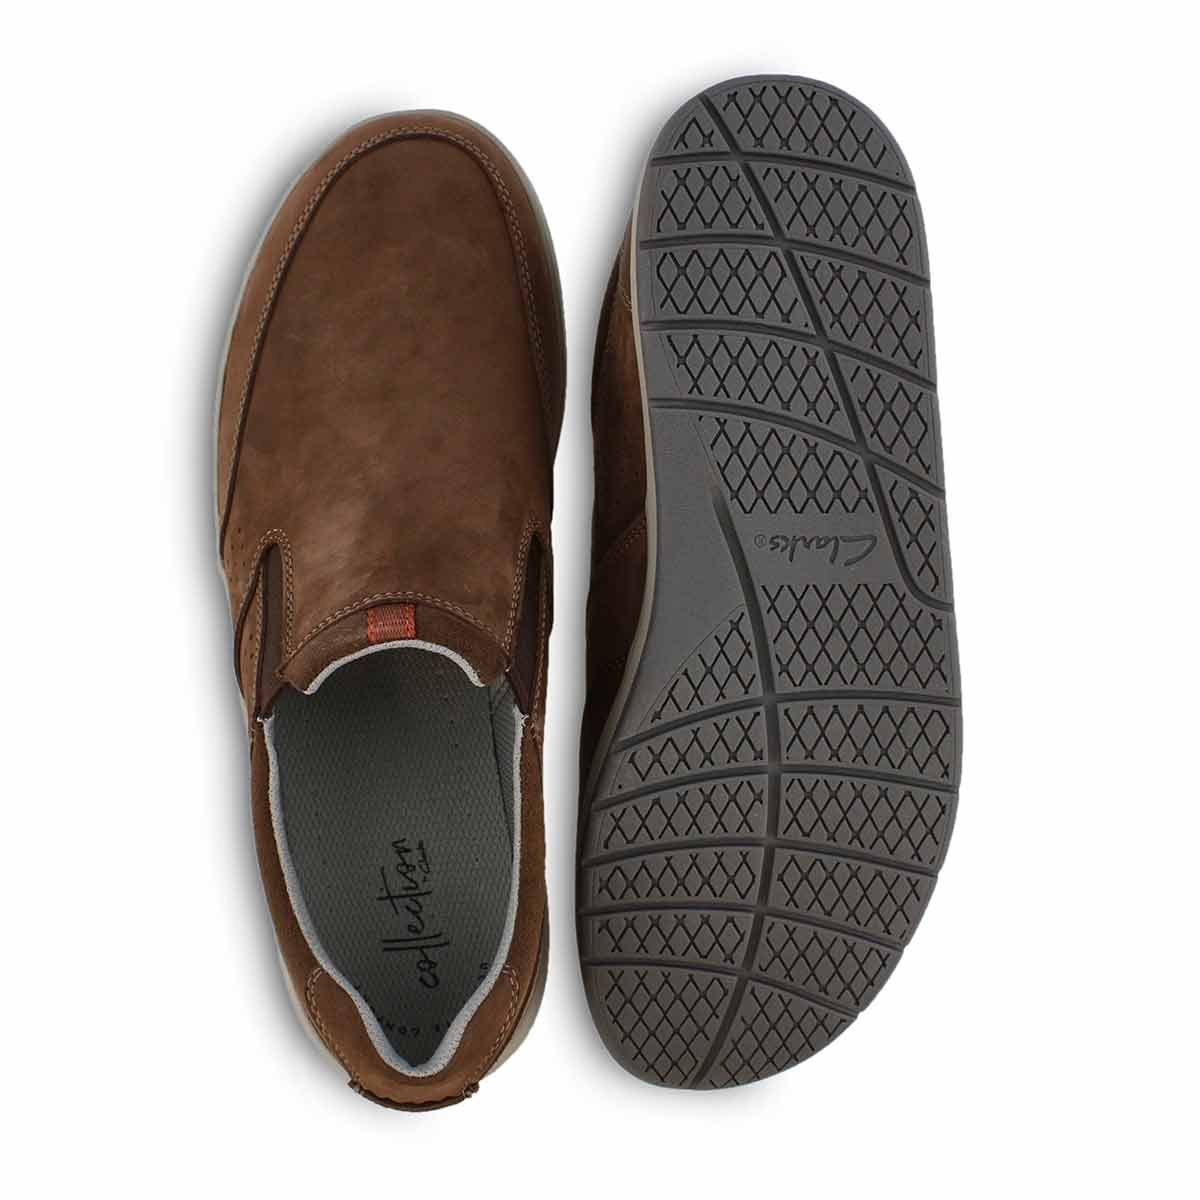 Mns Shoda Free brown casual slip on